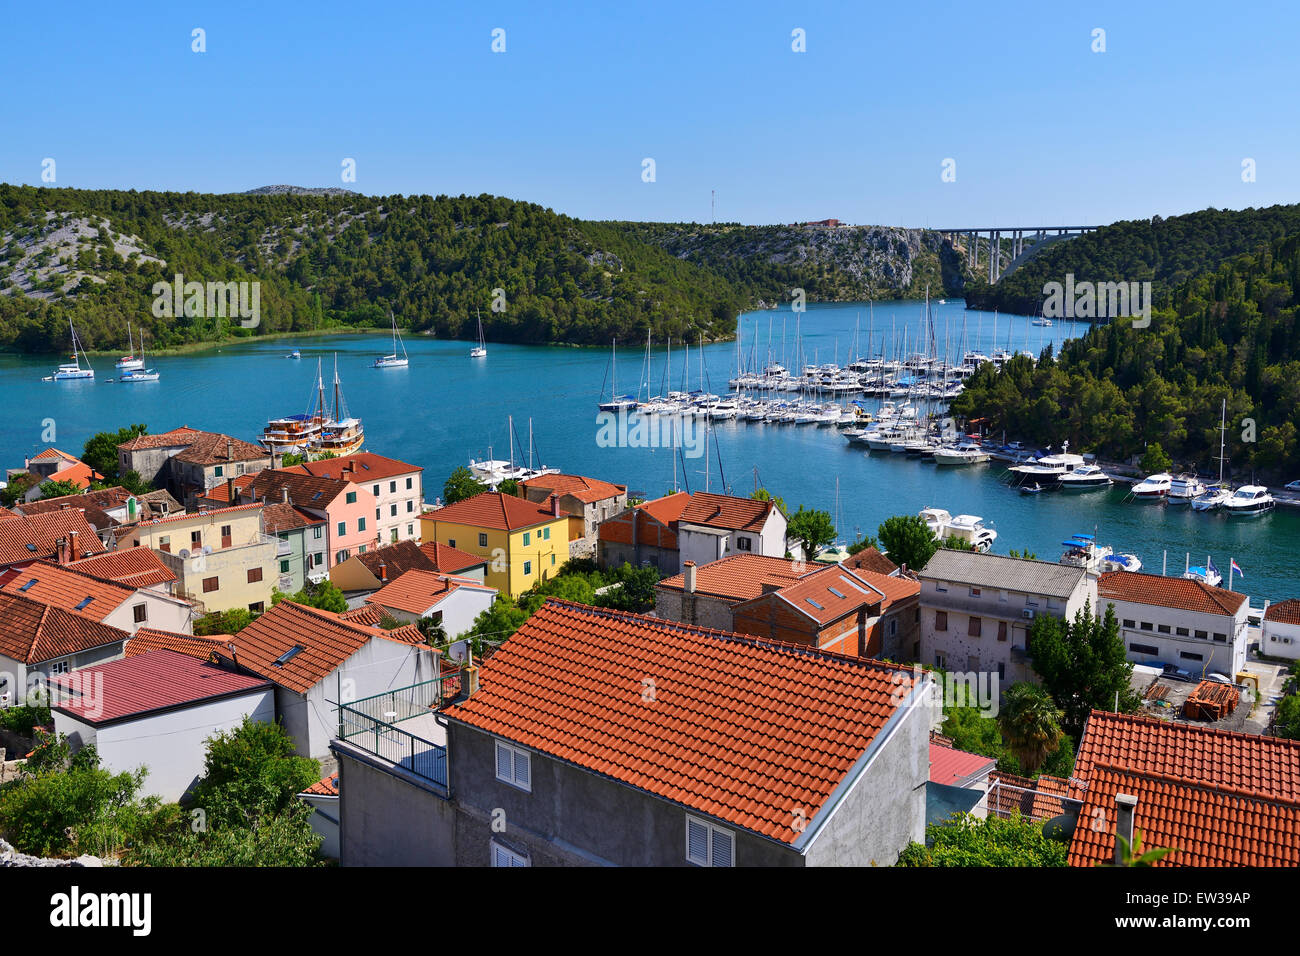 View of town of Skradin and marina on Krka River from view point - Dalmatian Coast of Croatia Stock Photo